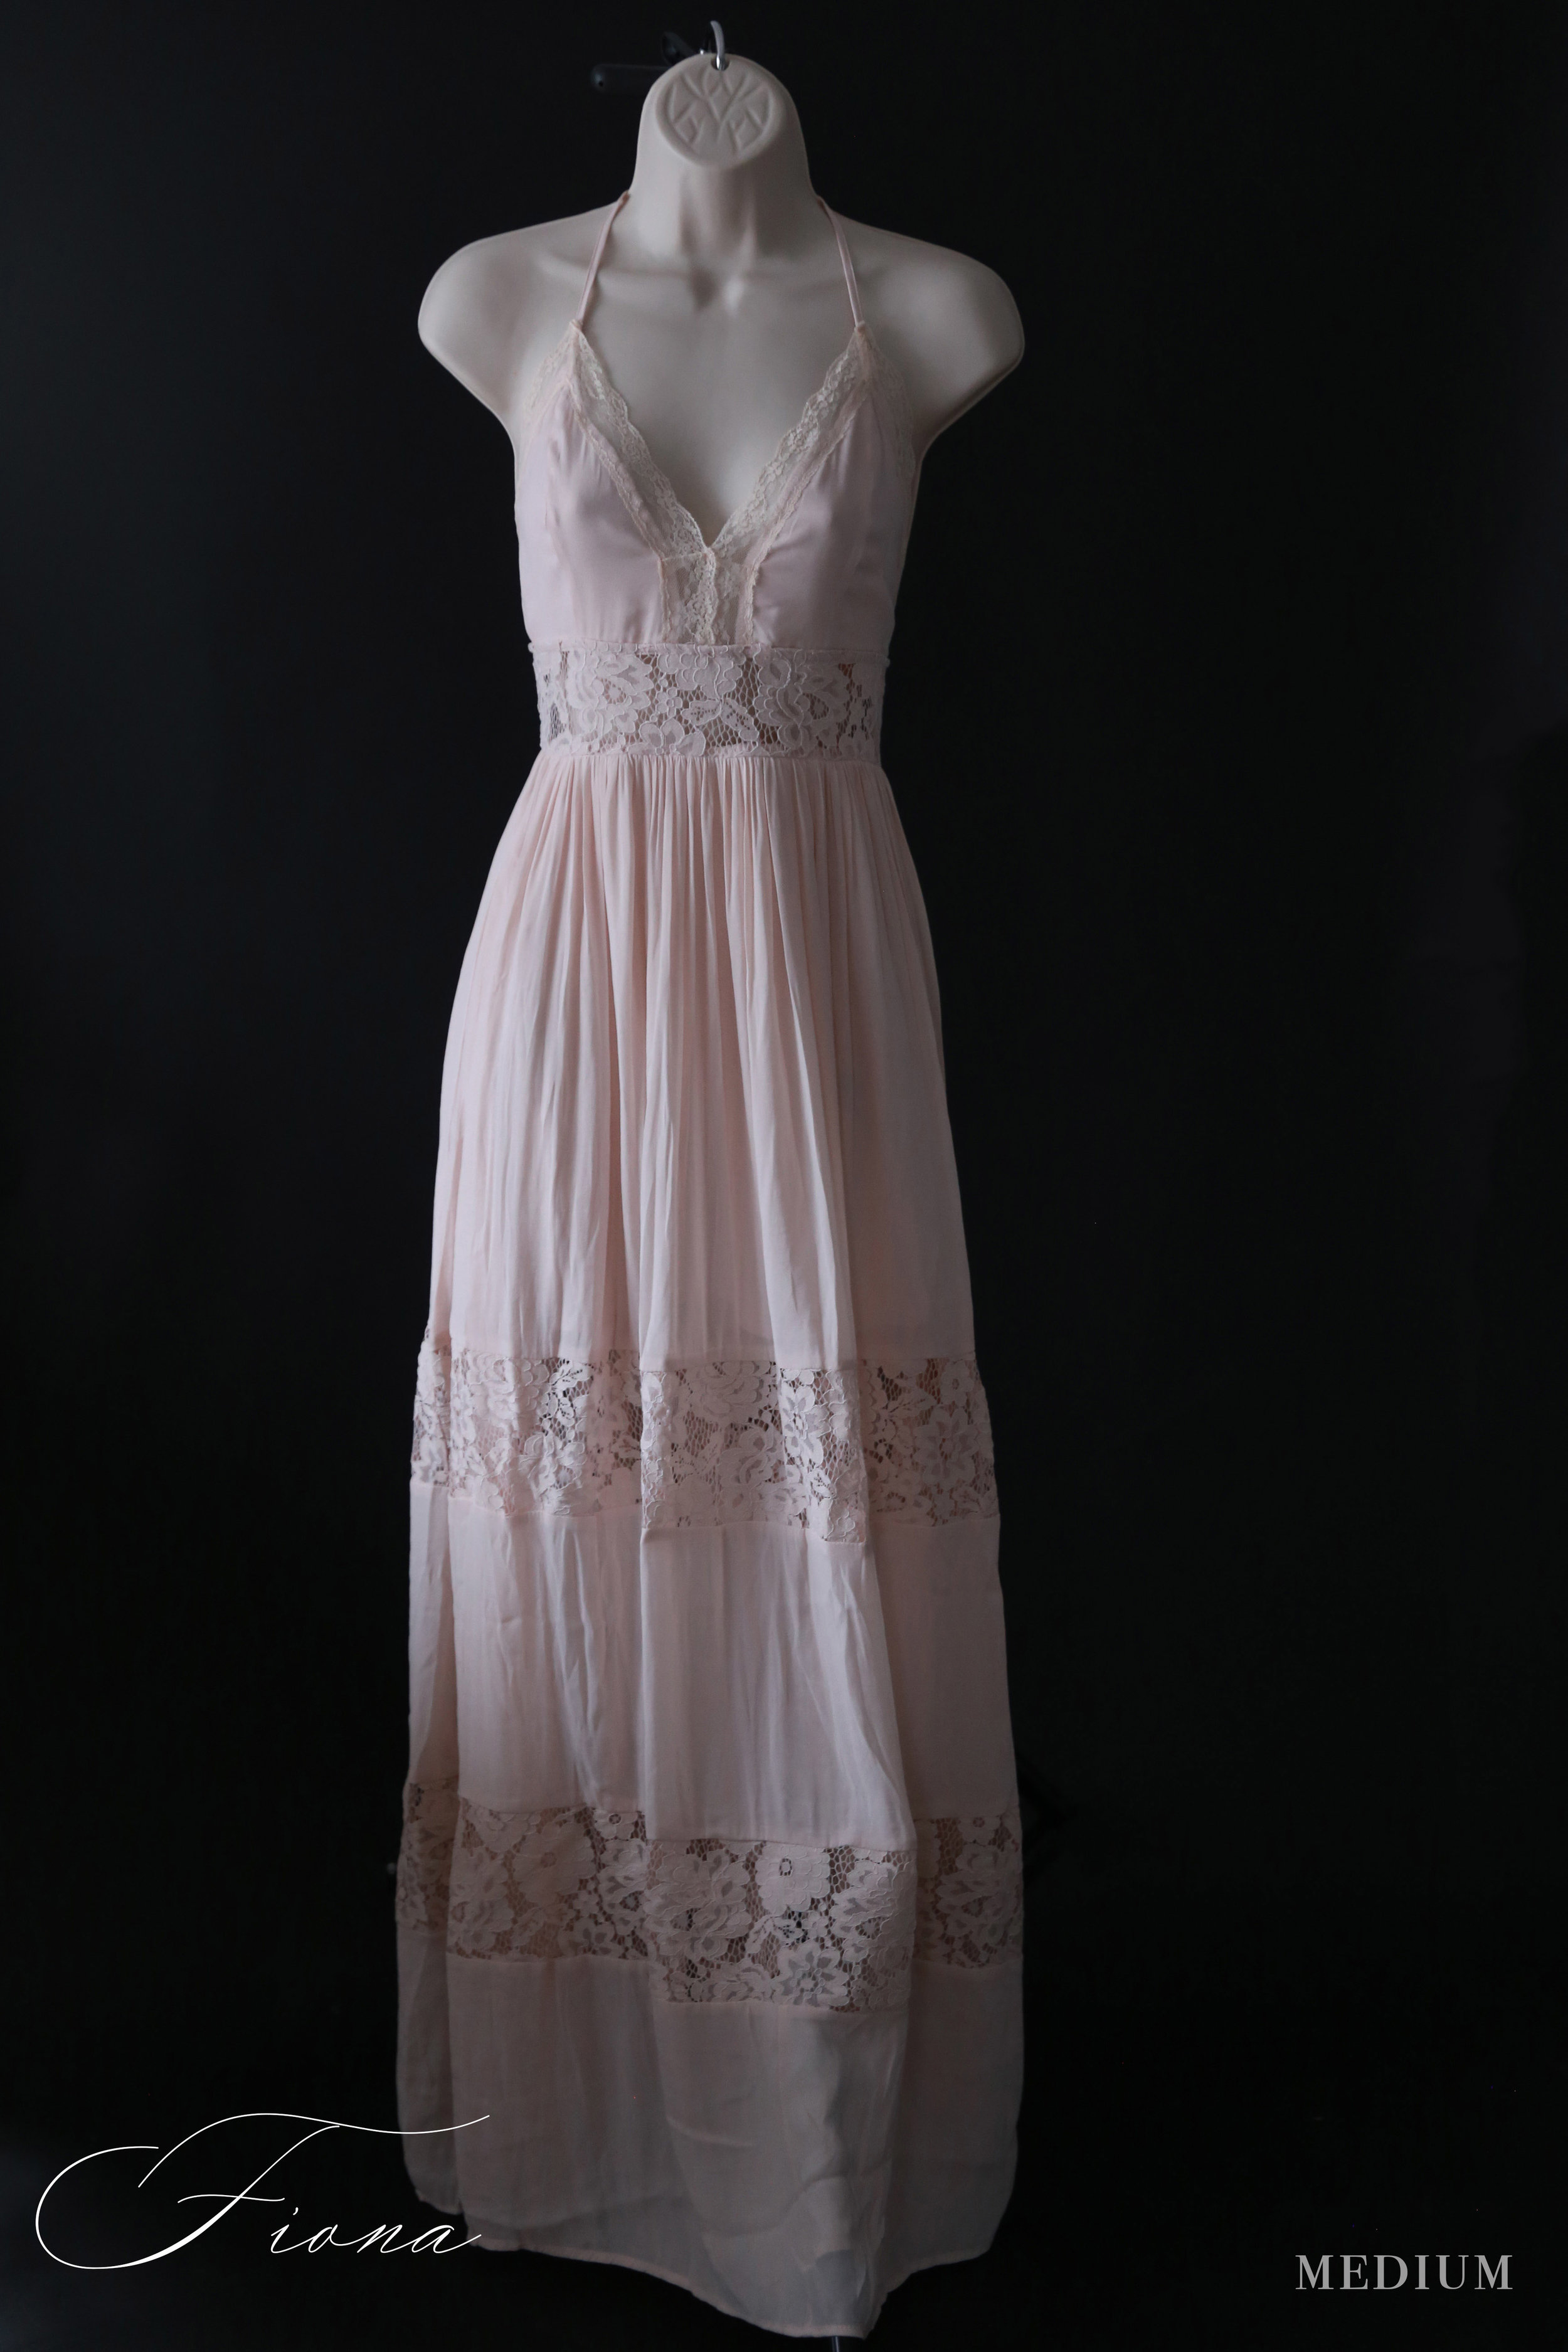 Fiona - MediumThis delicate and lacy dress gives a beautiful care free summer vibe.